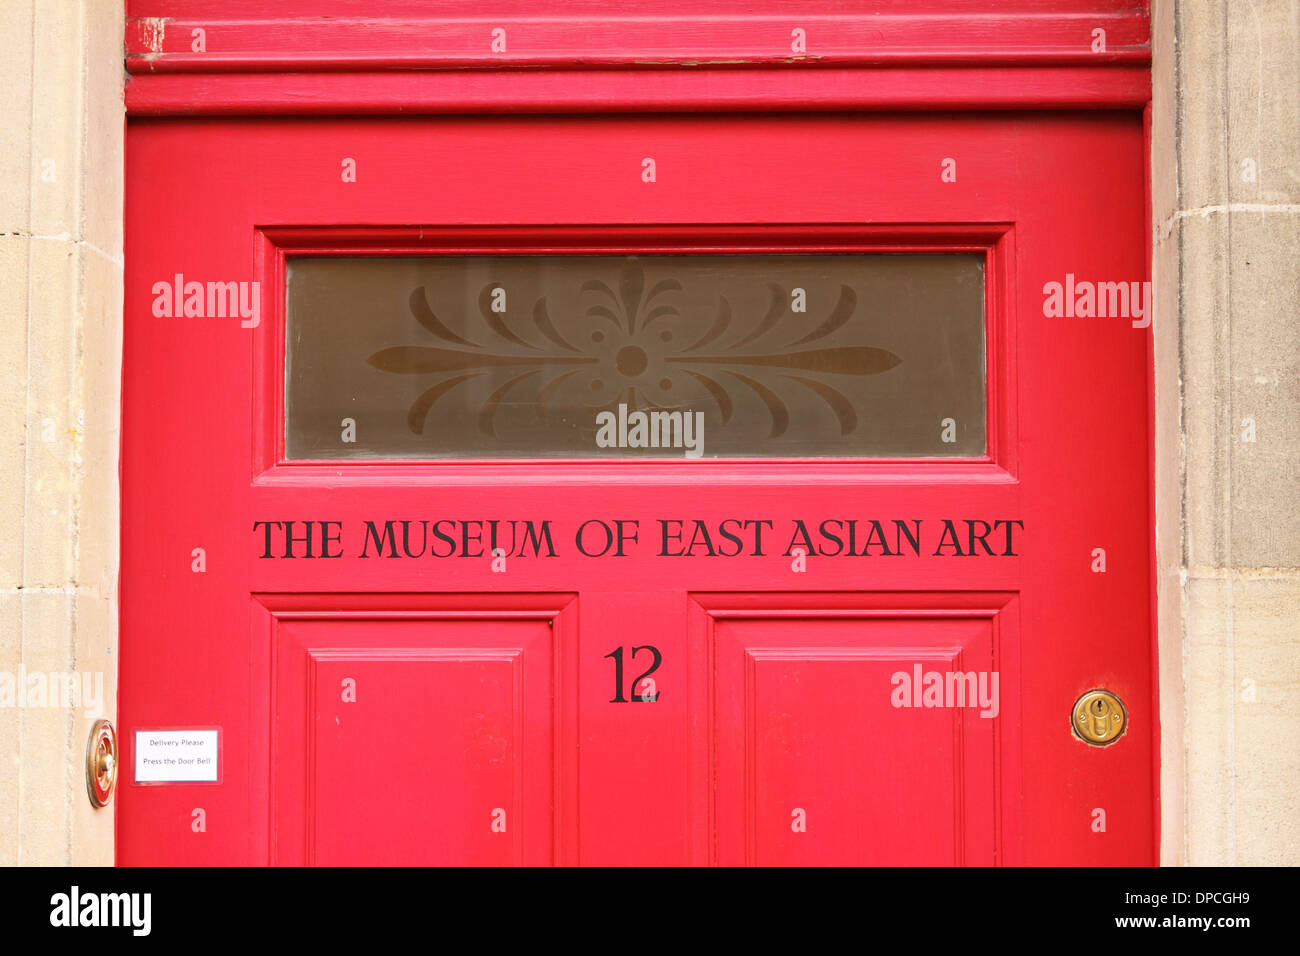 Bath - The Museum of East Asian Art entrance in Bath England UK - Stock Image